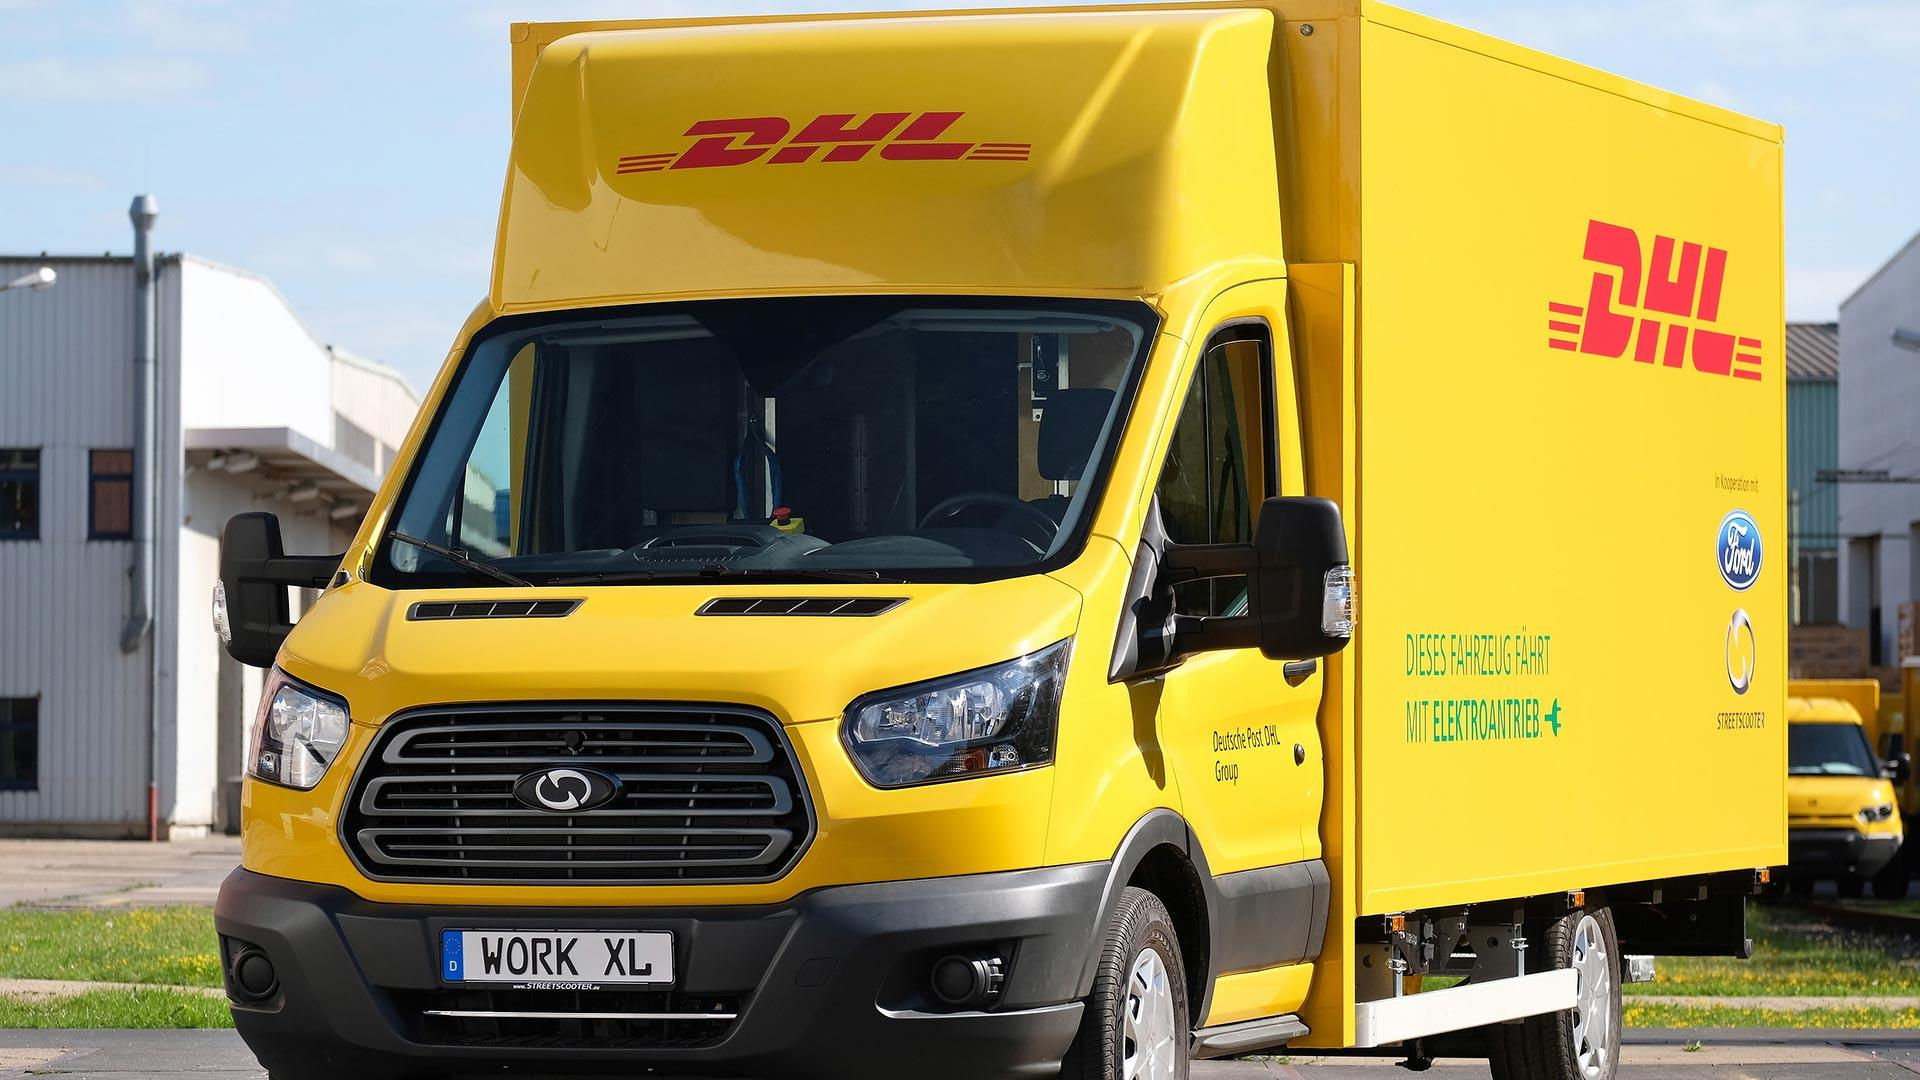 Ford_DHL_StreetScooter_XL_01